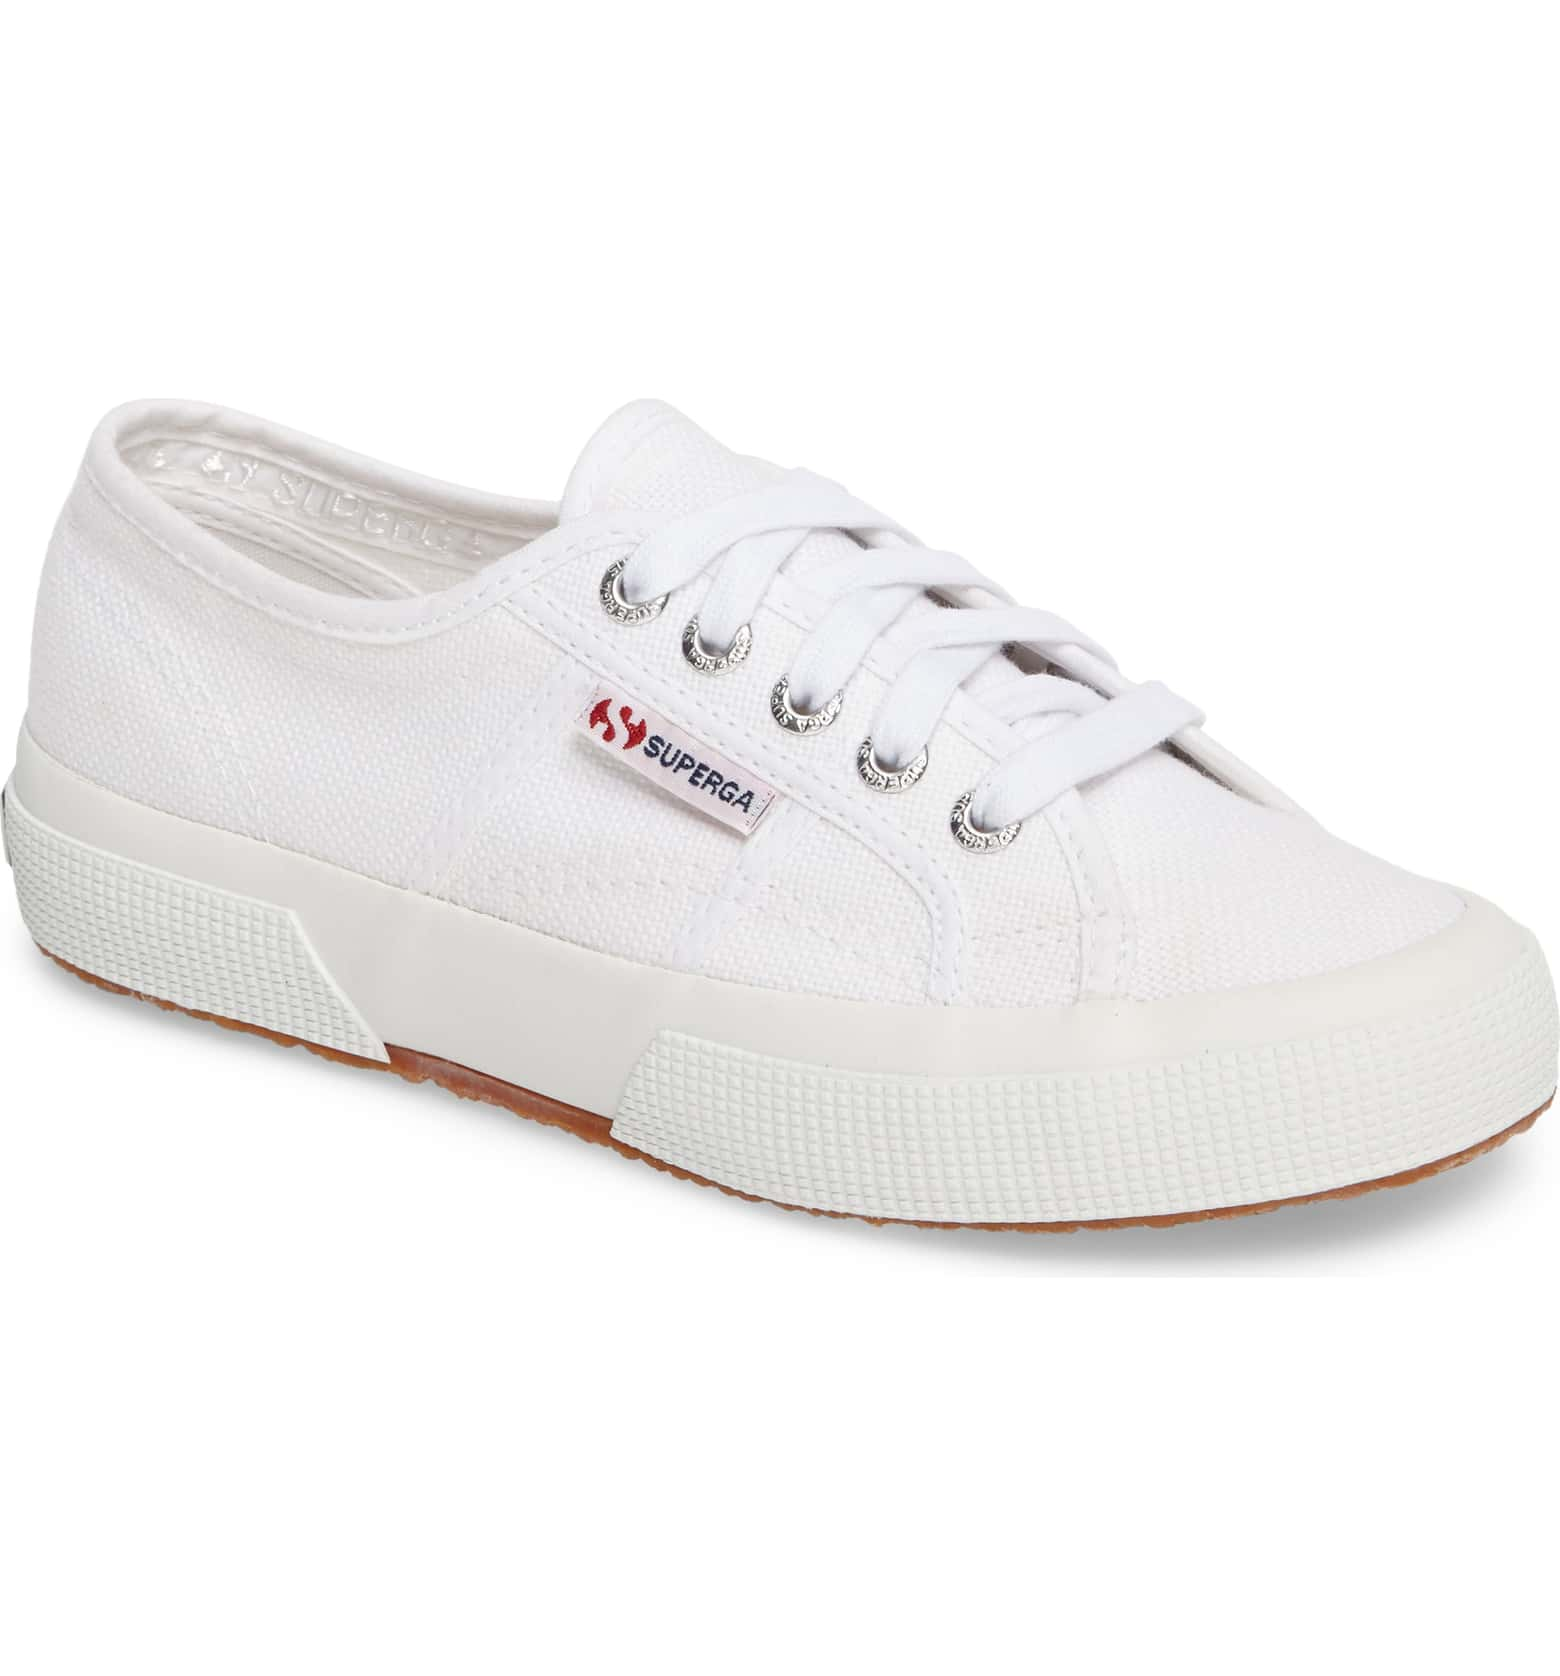 White Sneakers - Adding white sneakers to anything will make your outfit look more refined. Yes, they'll get dirty so you don't need to find the most expensive pair. Just make sure that they're comfortable.